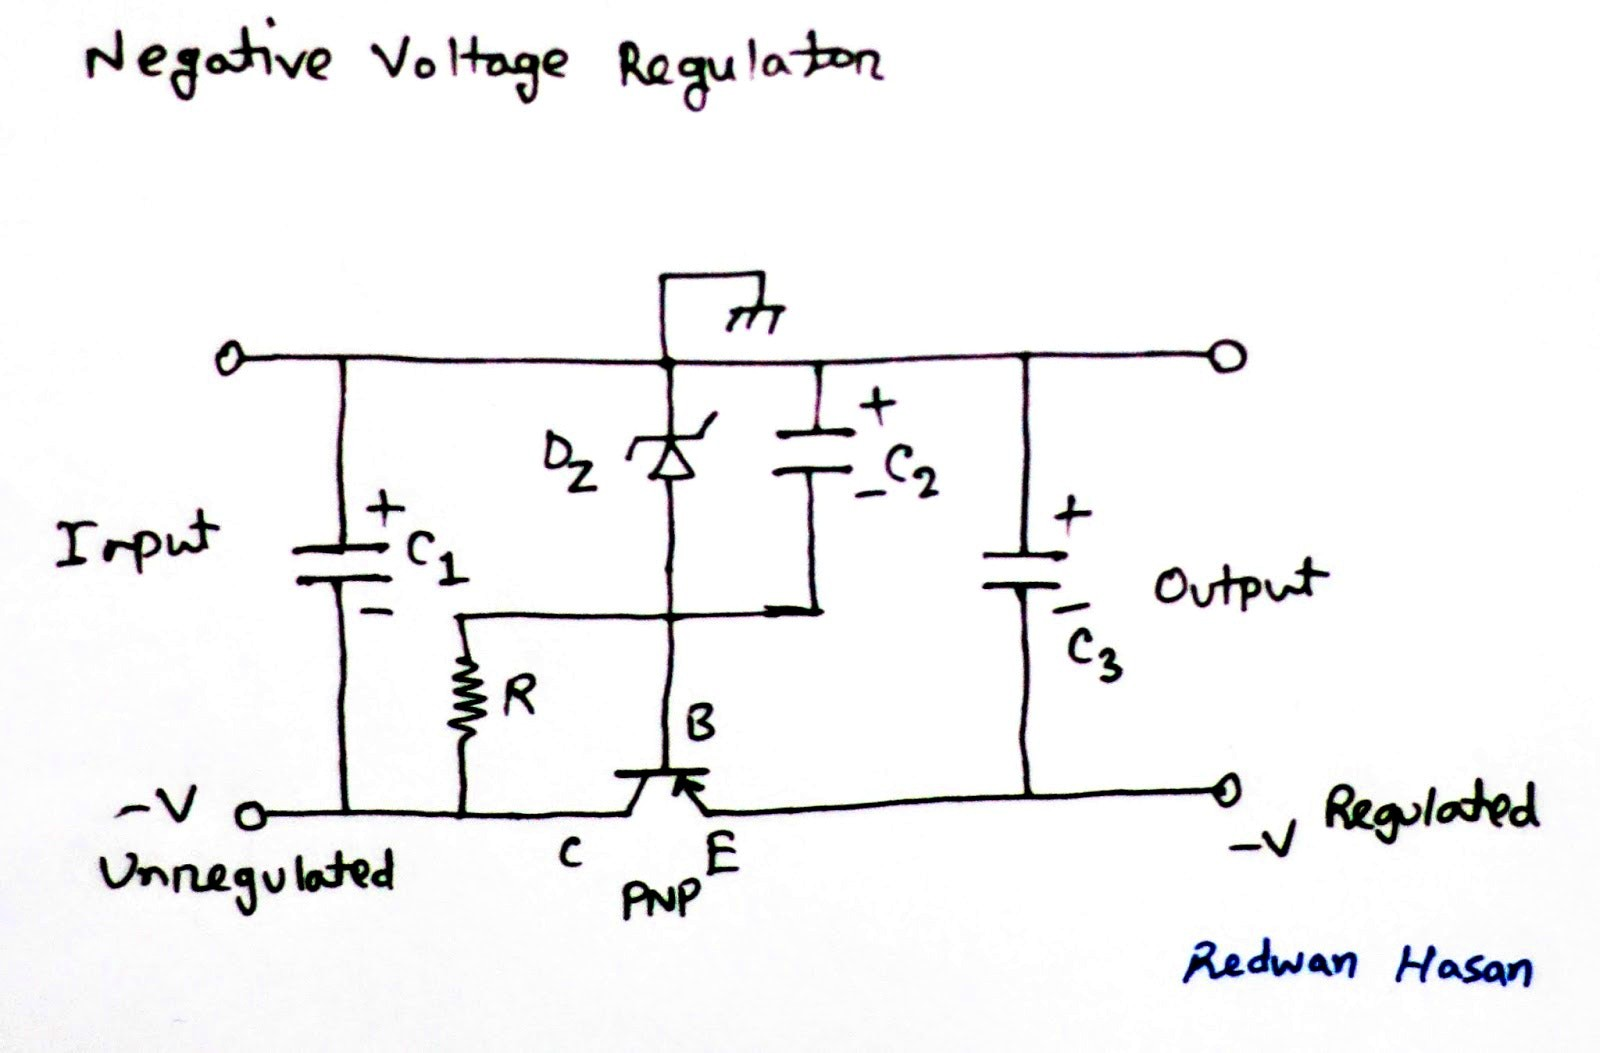 Zener Circuits Schematics Trusted Wiring Diagram Super Steady Diode Circuit Unique Image Crowbar Amazing Scavengers Blog